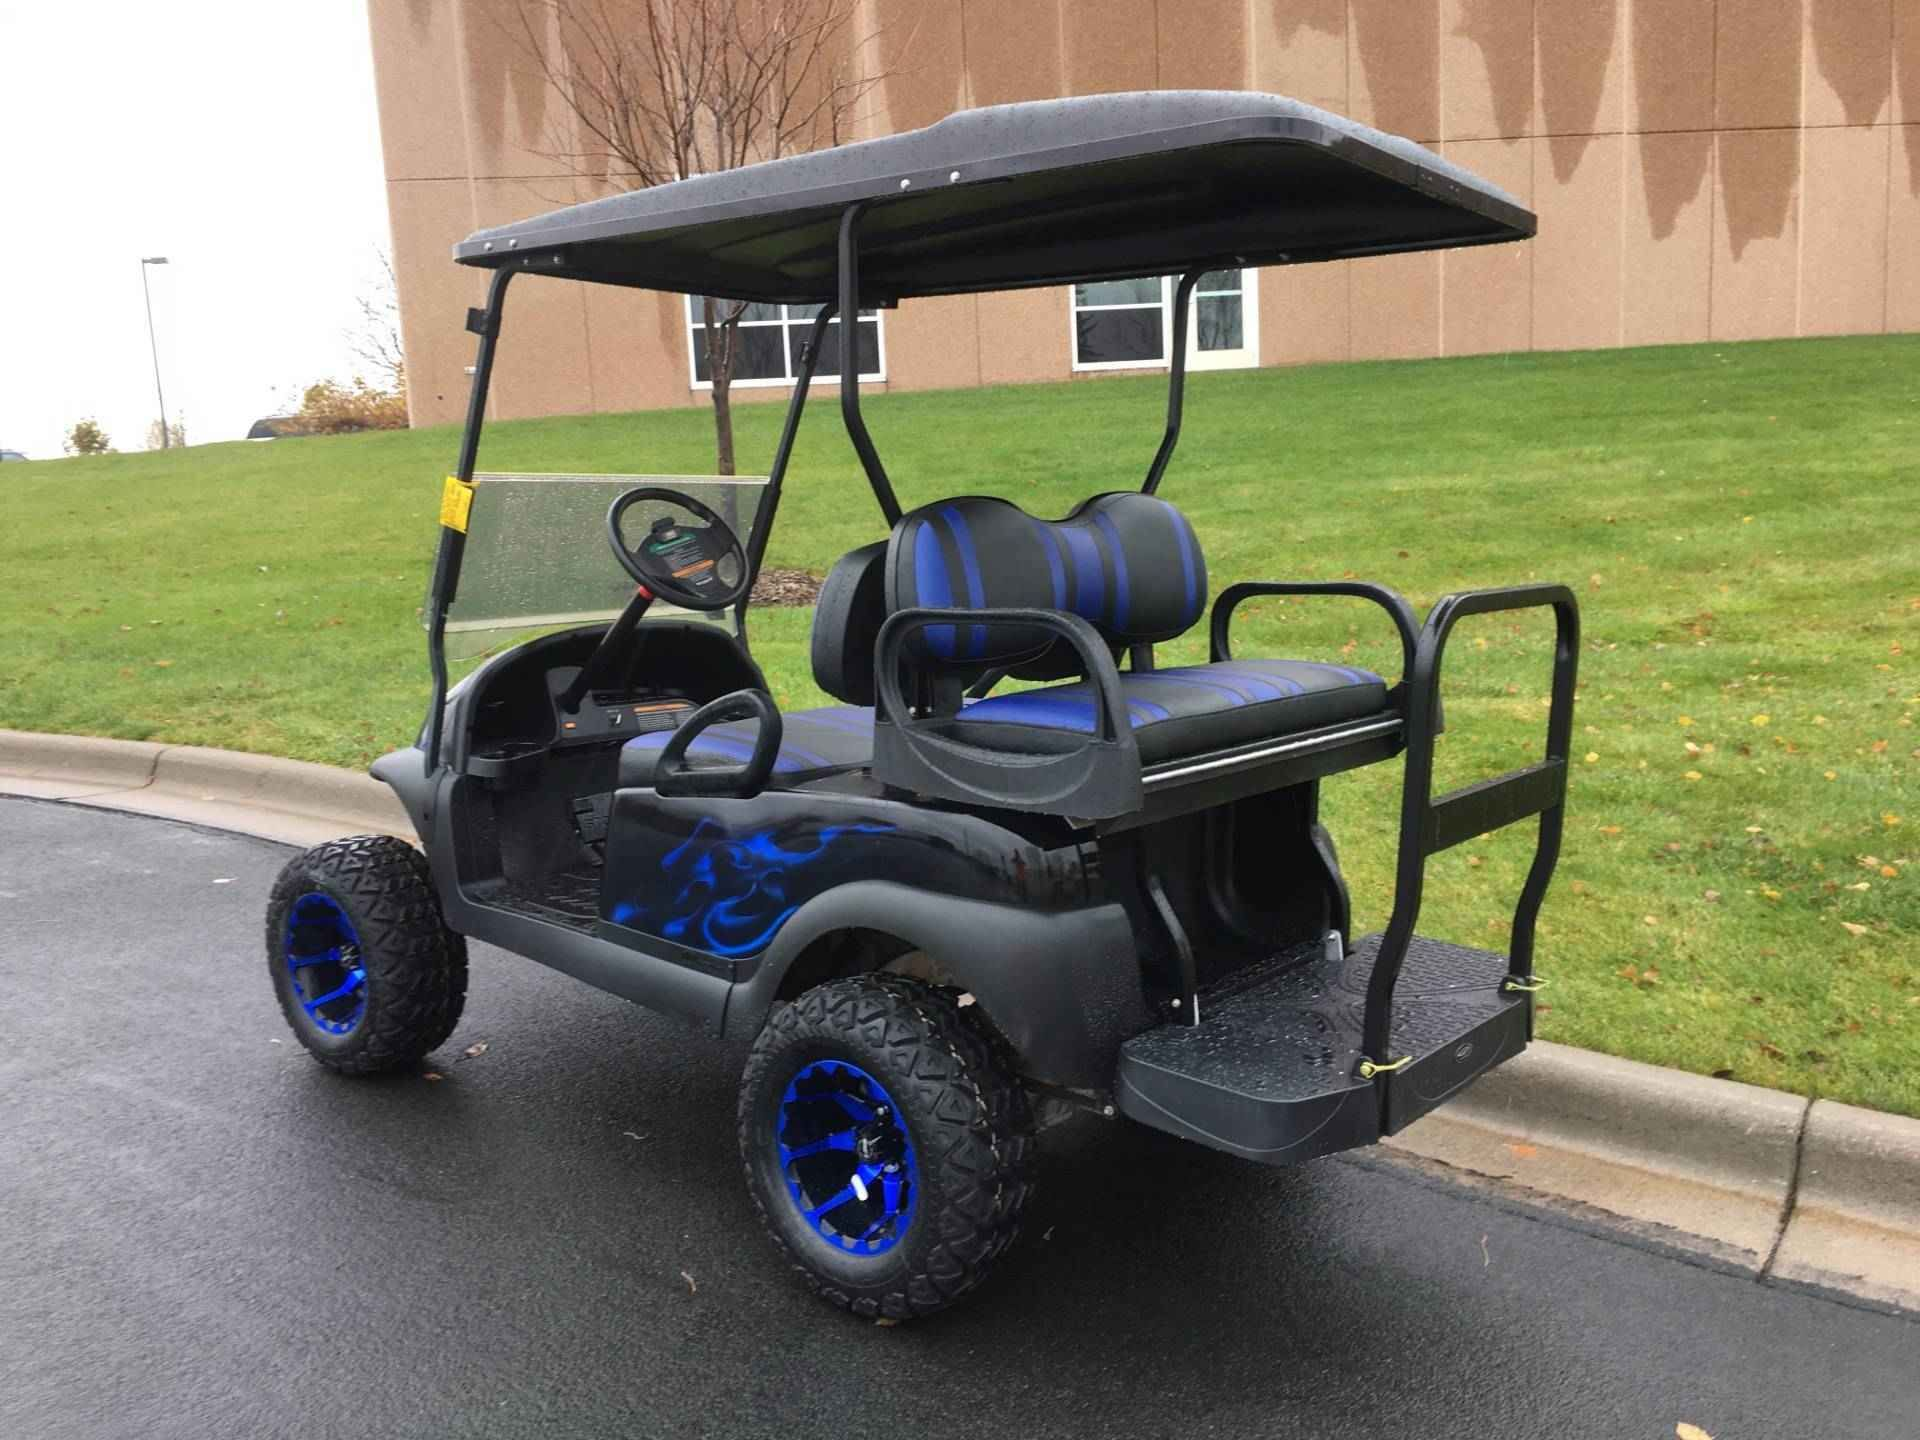 Used 2012 Club Car Precedent Atvs For Sale In Minnesota 2012 Club Car Precedent 2012 Blue Ghost Flame Club Golf Carts Club Car Golf Cart Golf Carts For Sale